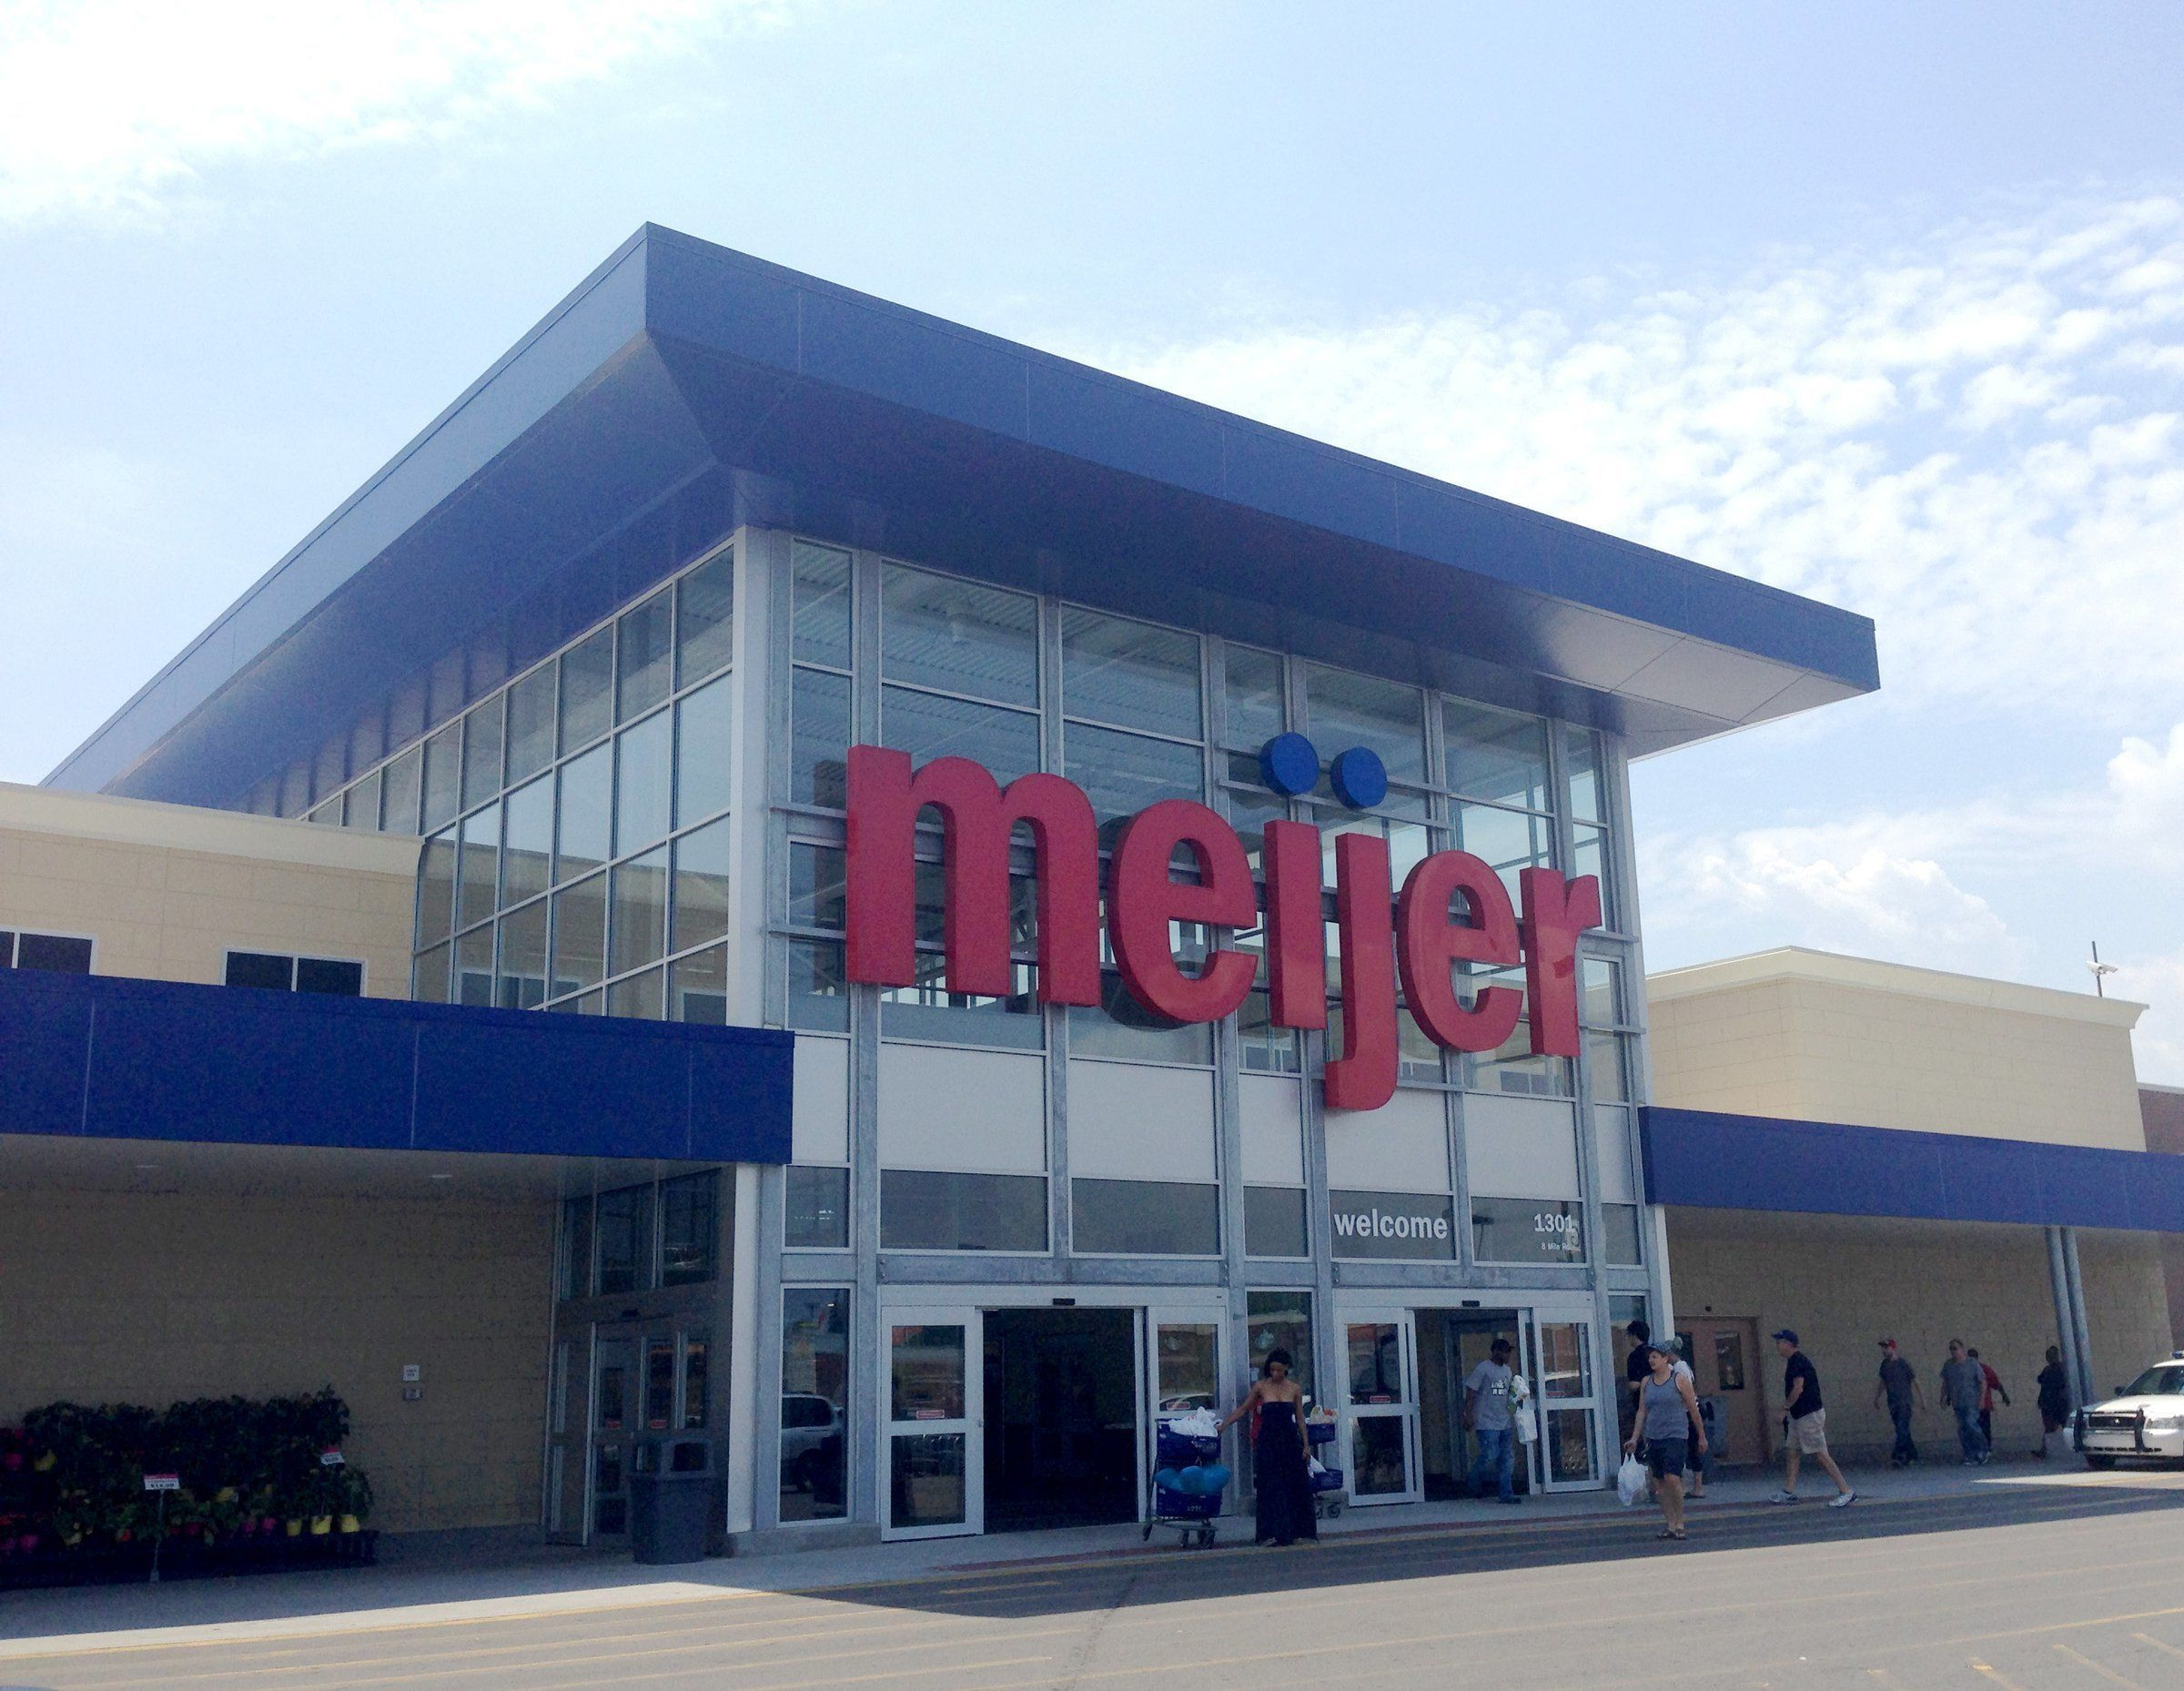 """The Grand Rapids-based Meijer chain said it will continue to pay its hourly employees an """"Appreciation Bonus"""" of $2 per hour through at least June 20, according to a statement on May 22, 2020."""